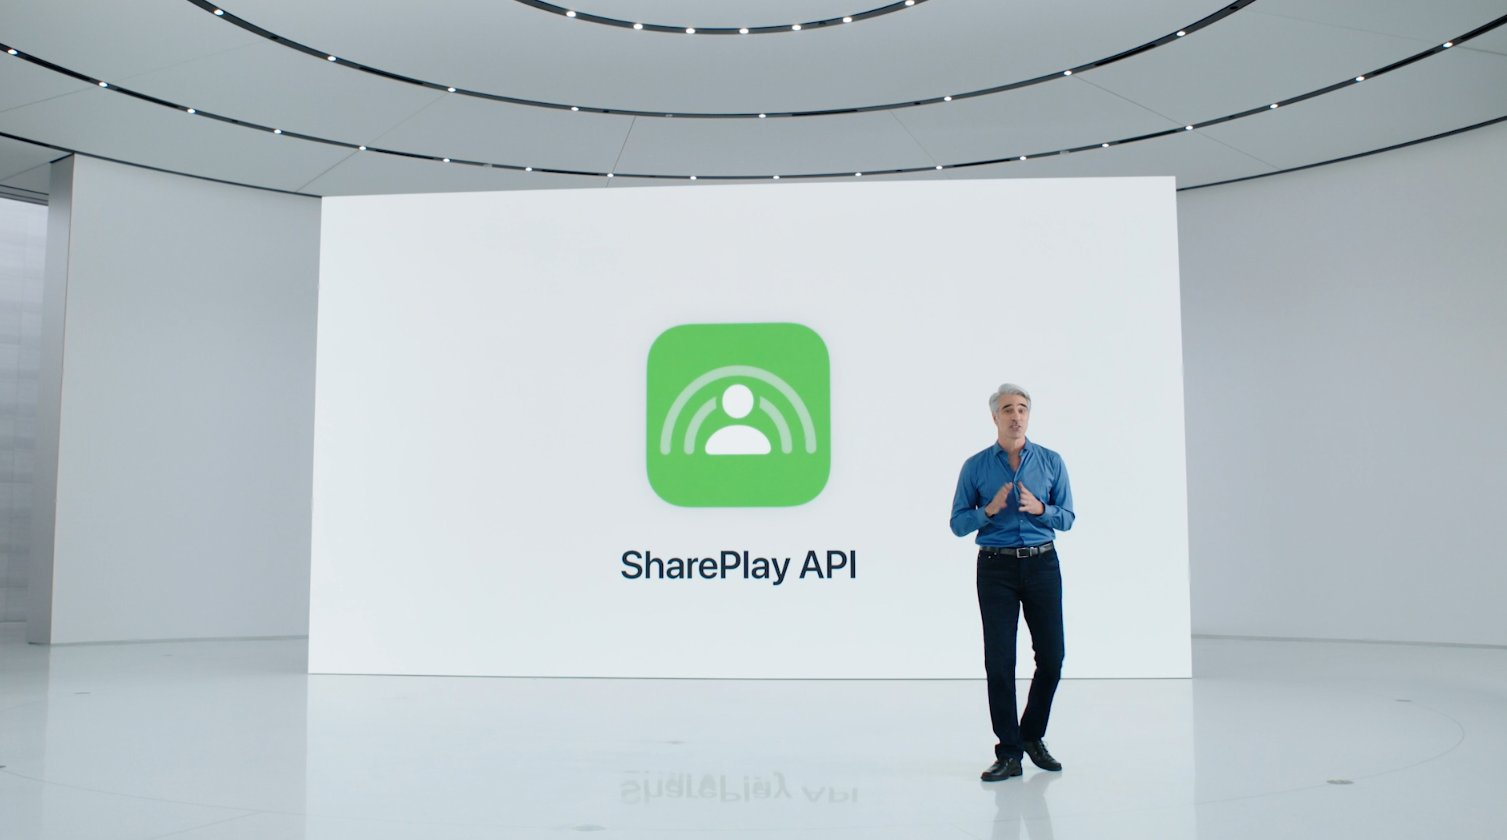 New Feature Introduced Called Share Play With iOS 15